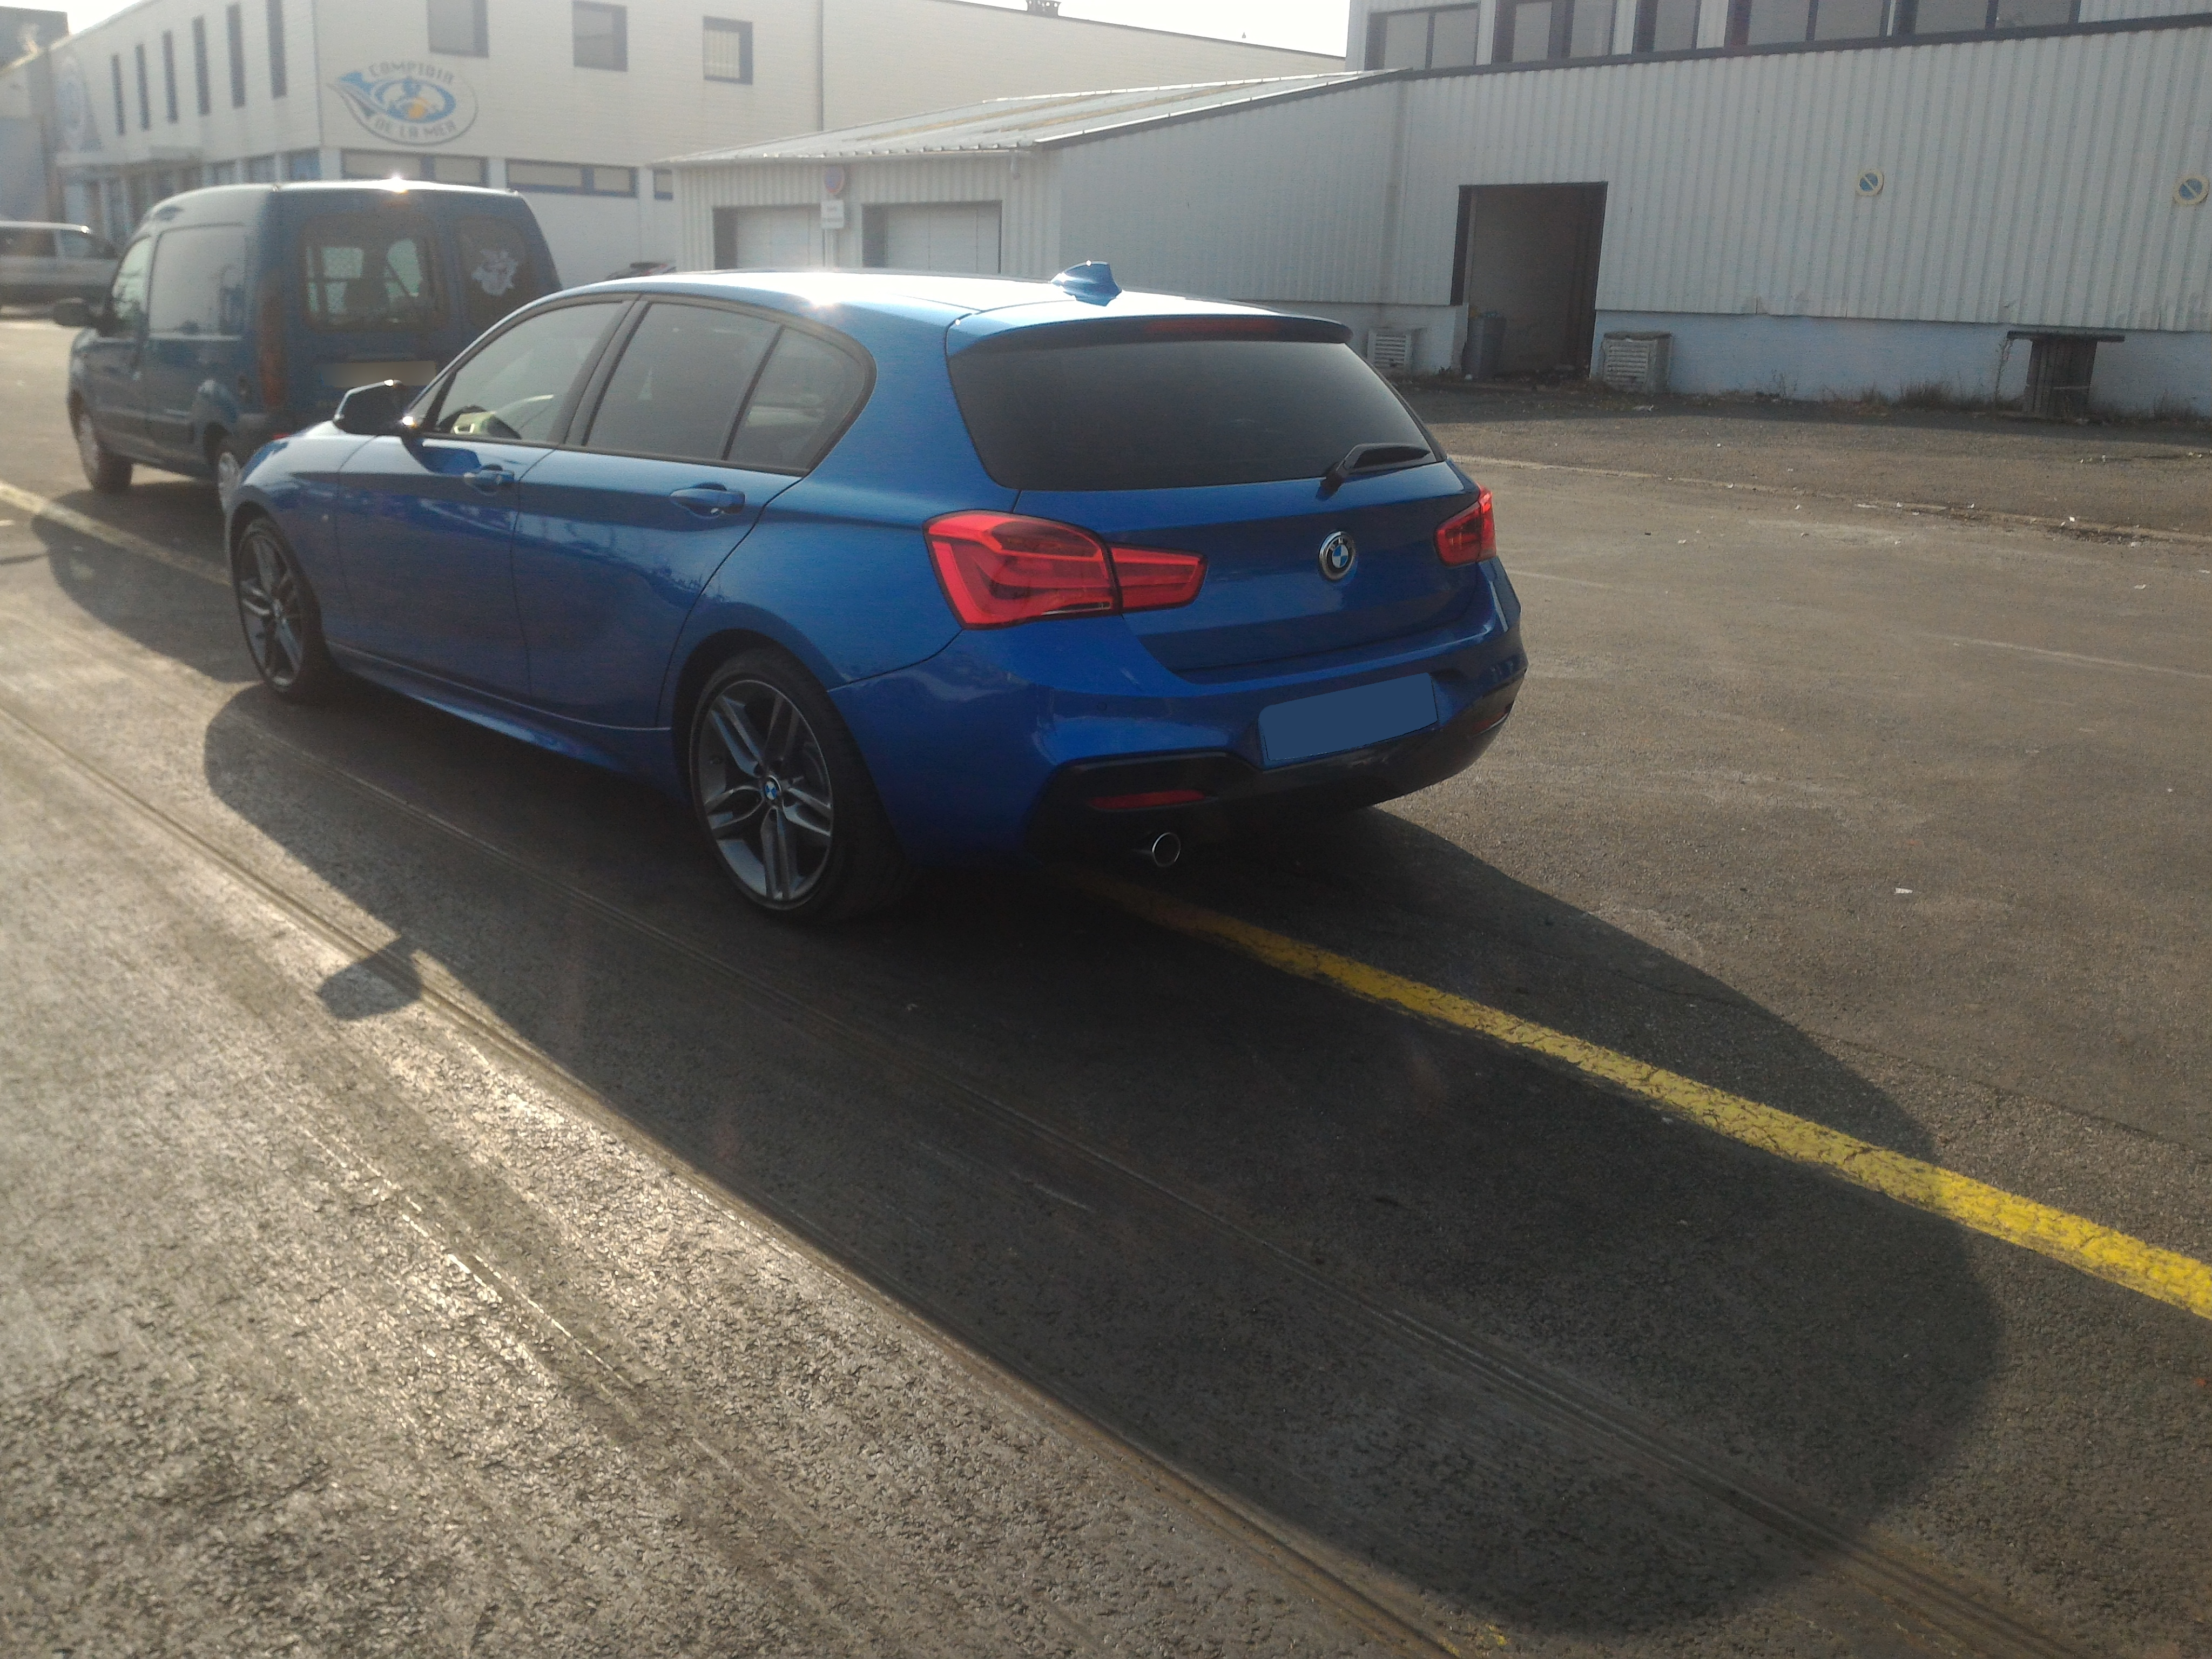 file bmw 1 series 118d f20 with m sport pack 1 2015 wikimedia commons. Black Bedroom Furniture Sets. Home Design Ideas